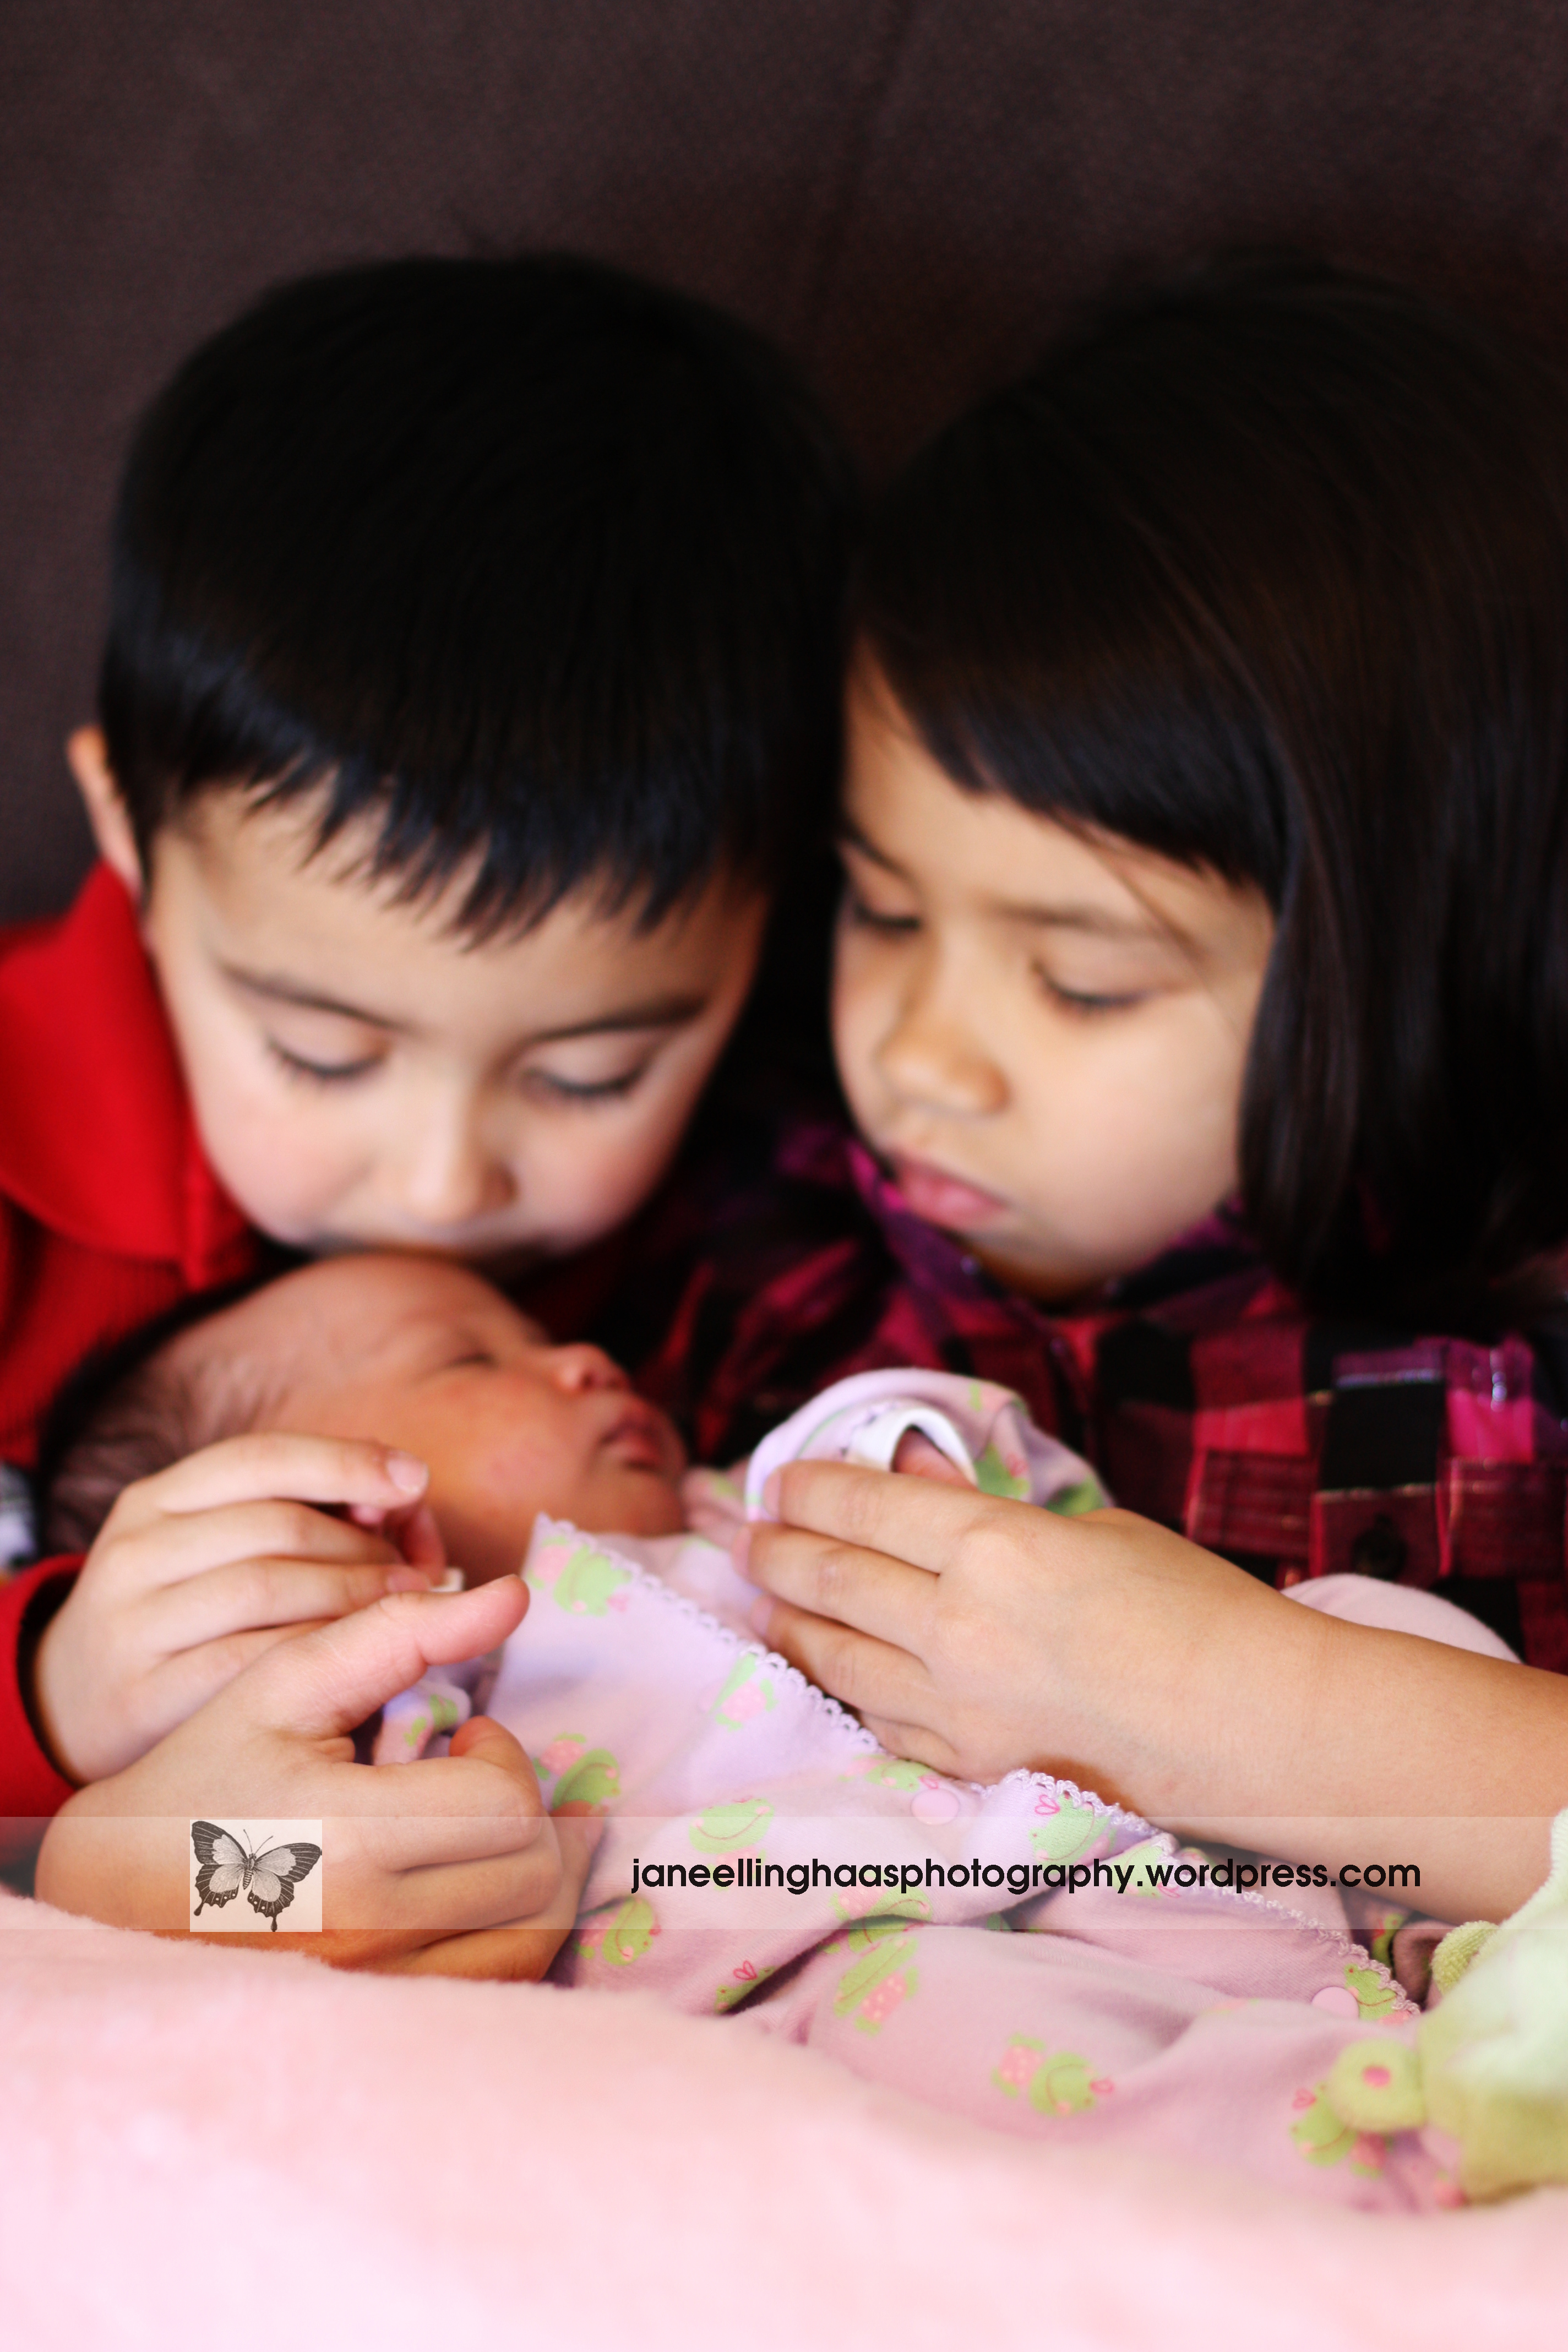 Newborn Pictures with Siblings http://jane-louise-photography.com/2010/01/17/baby-ava/